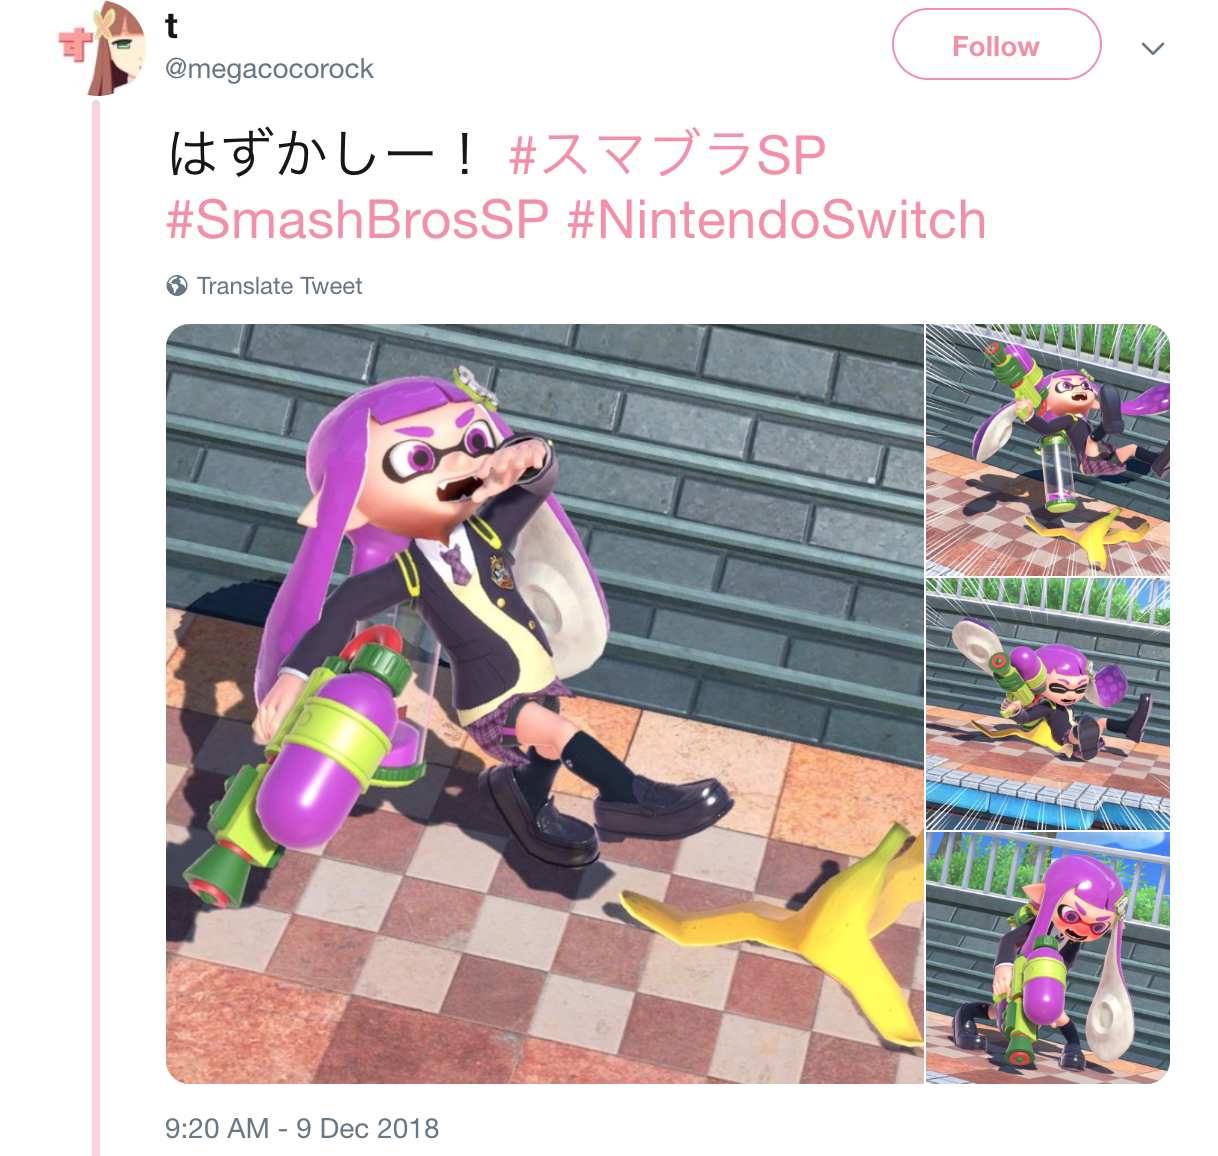 Inkling Girl Super smash bros, Face, Know your meme